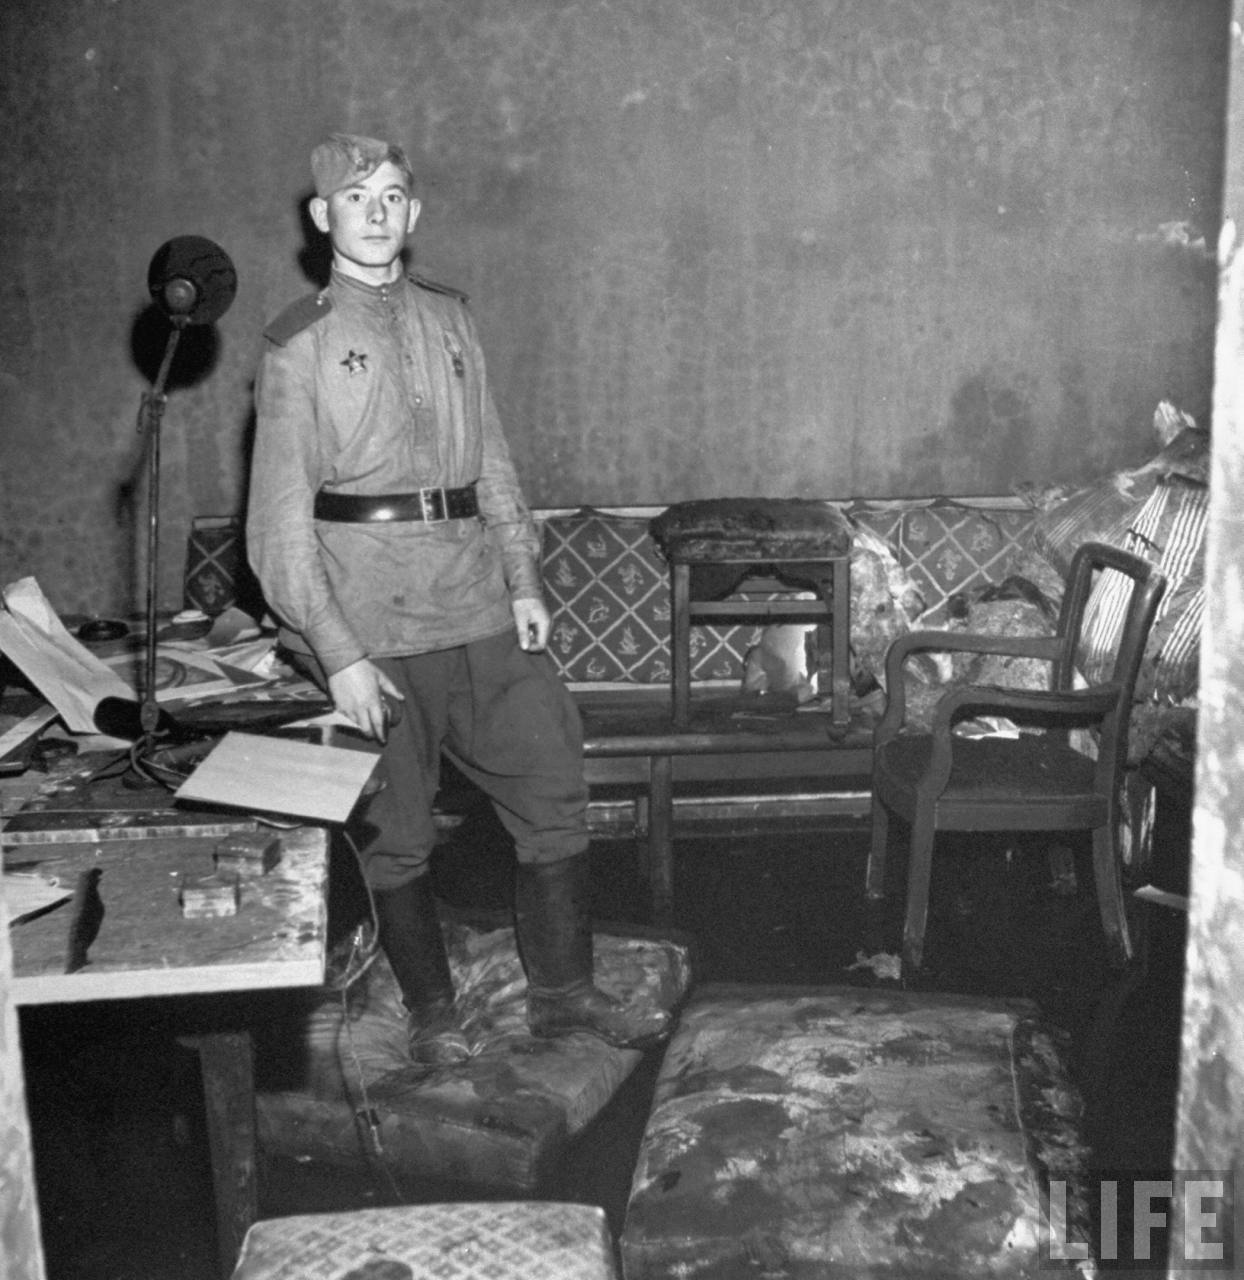 Russian soldier standing amid rubble in Adolf Hitlers command bunker where he and his mistress Eva Braun were alleged to have committed suicide, under the Reichschancellery bldg.Russian soldier standing amid rubble in Adolf Hitlers command bunker where he and his mistress Eva Braun were alleged to have committed suicide, under the Reichschancellery bldg.